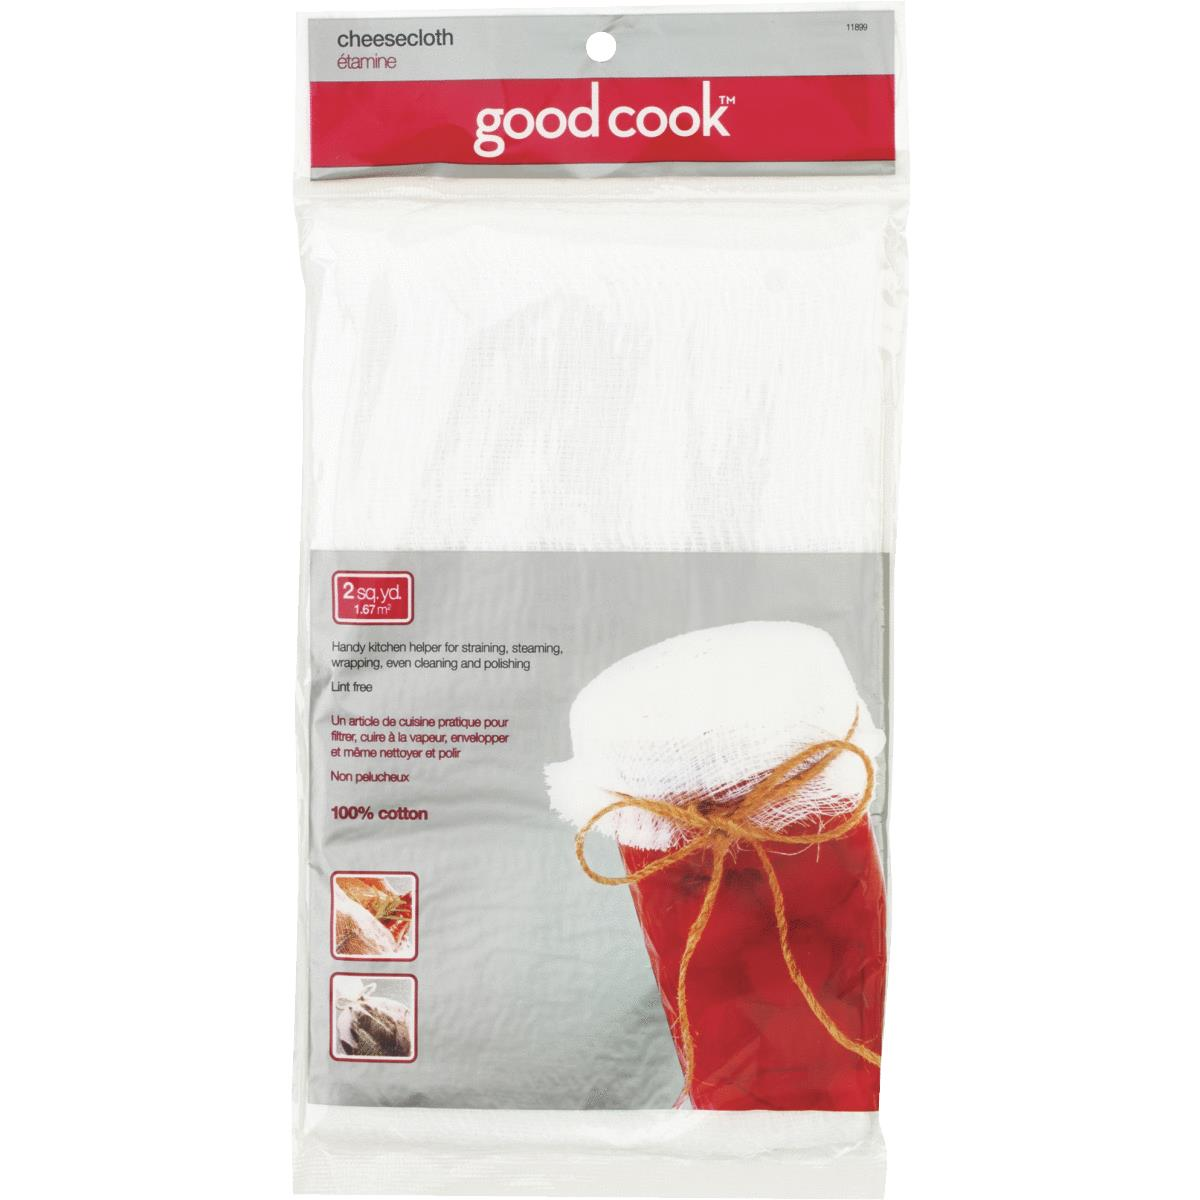 Goodcook Cheesecloth